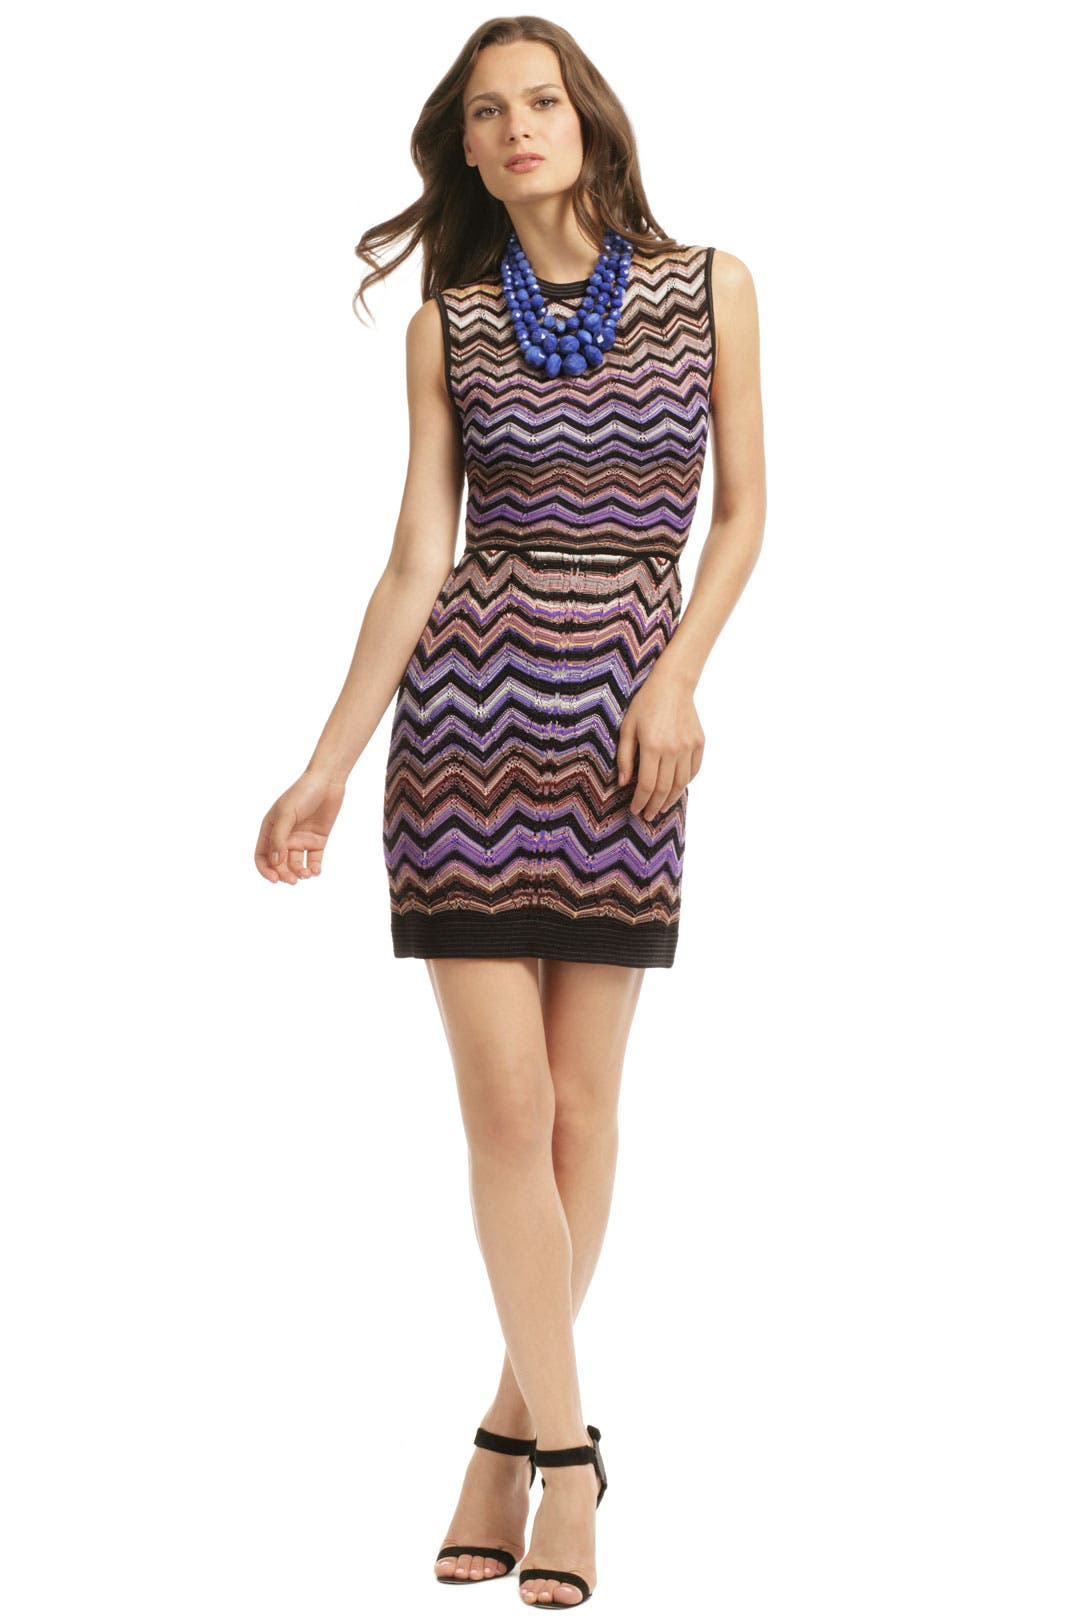 Push Come To Shove Sheath by Missoni